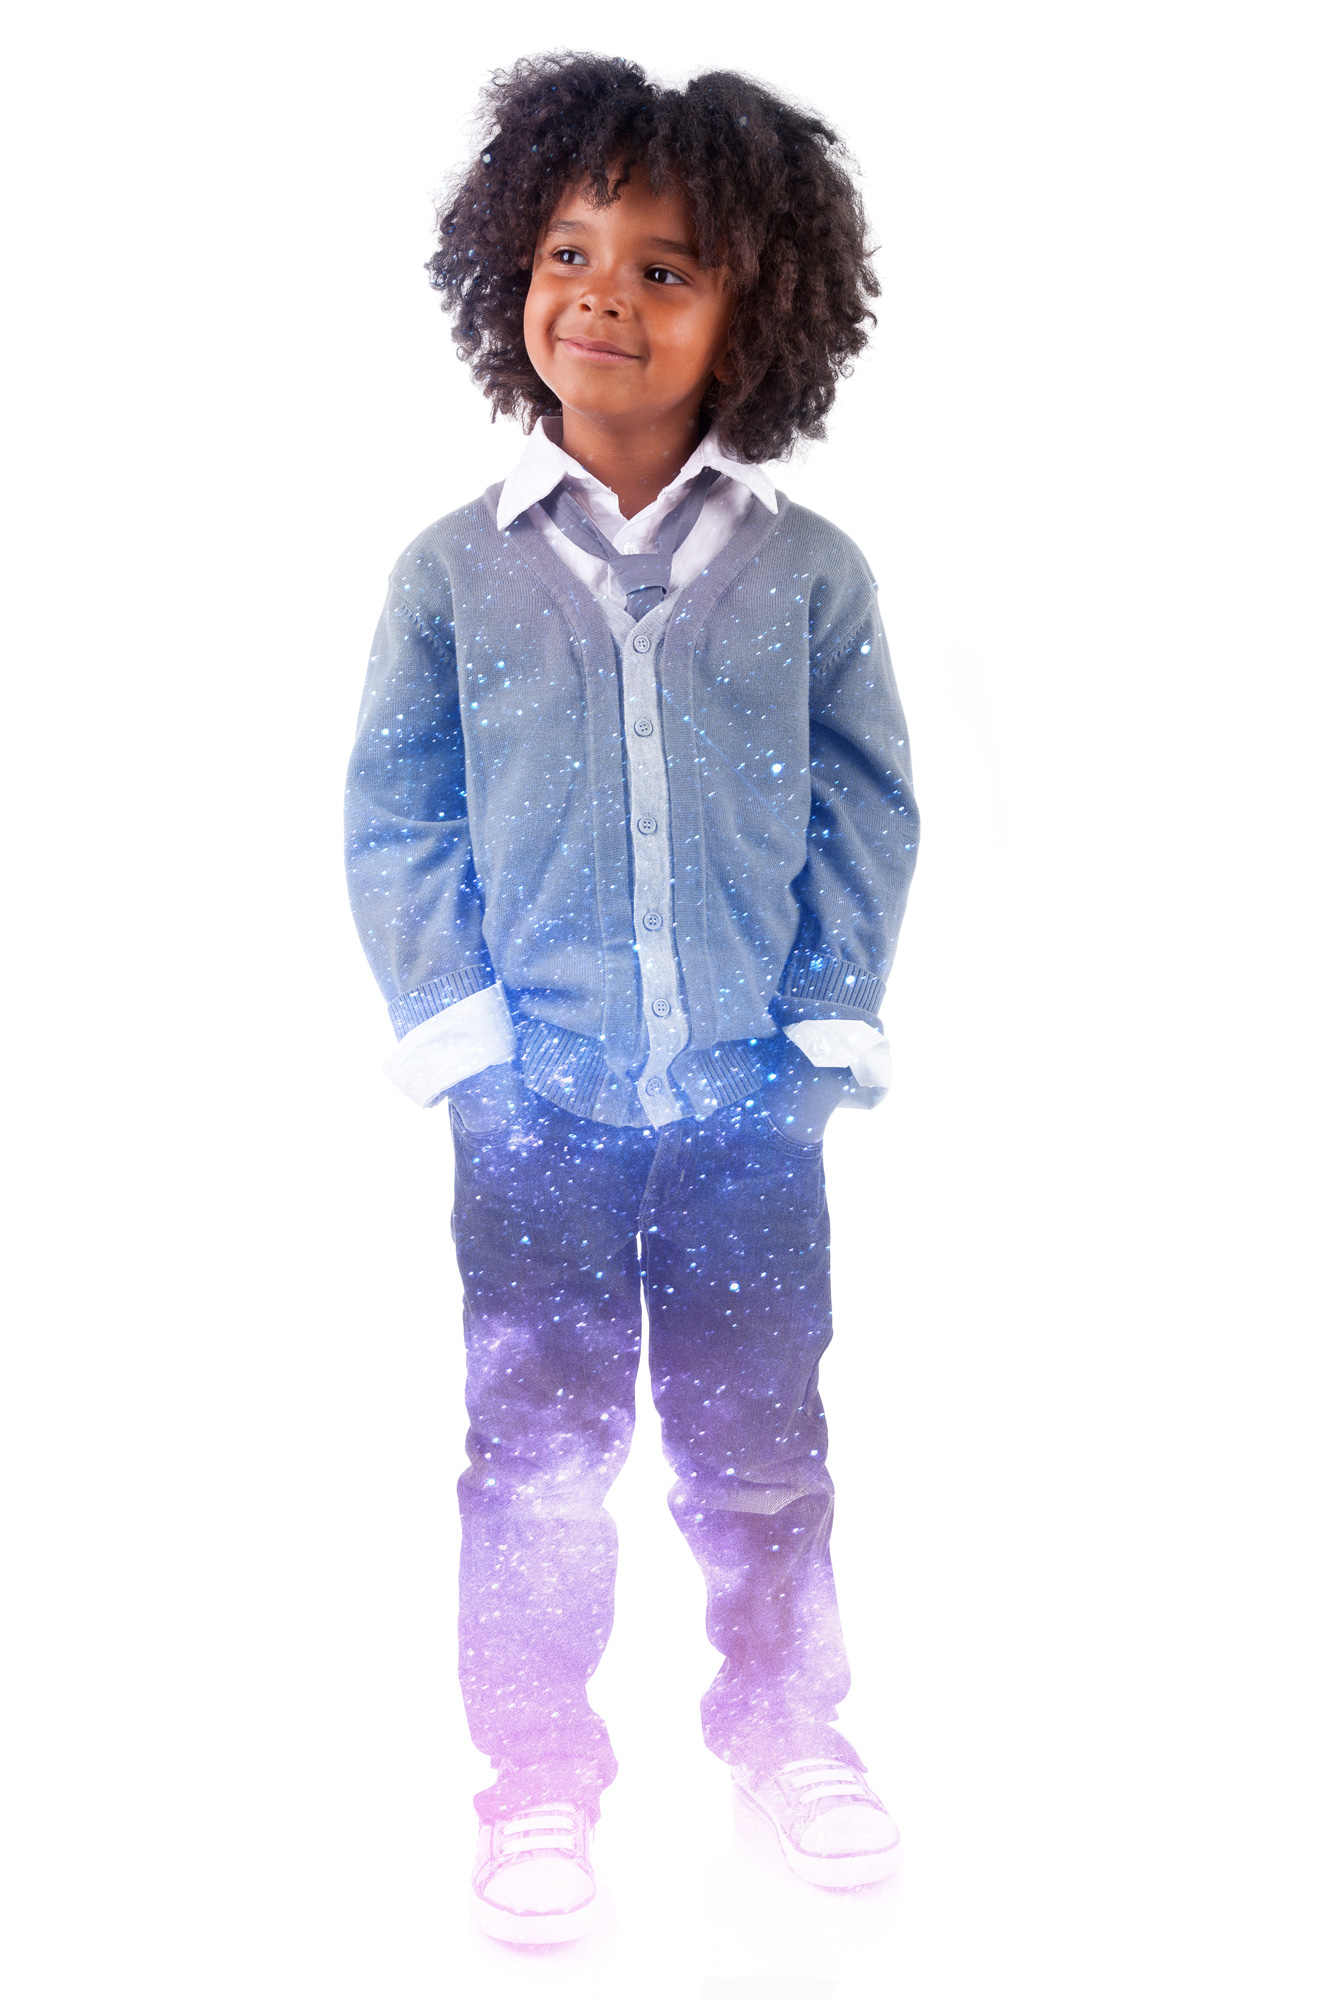 """""""Star chlid"""" image of a young boy whose pants reflect the galaxy image from the 2019 Leadership Conference."""